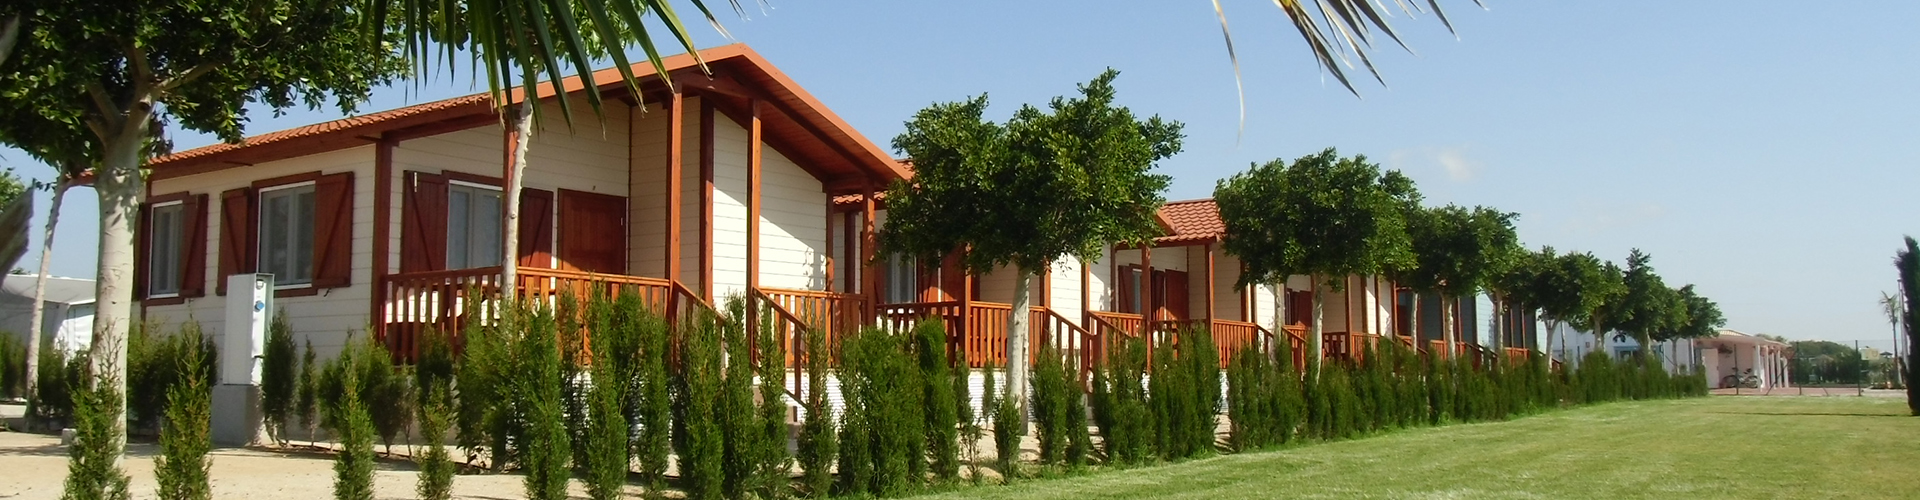 Lo Monte bungalows larga